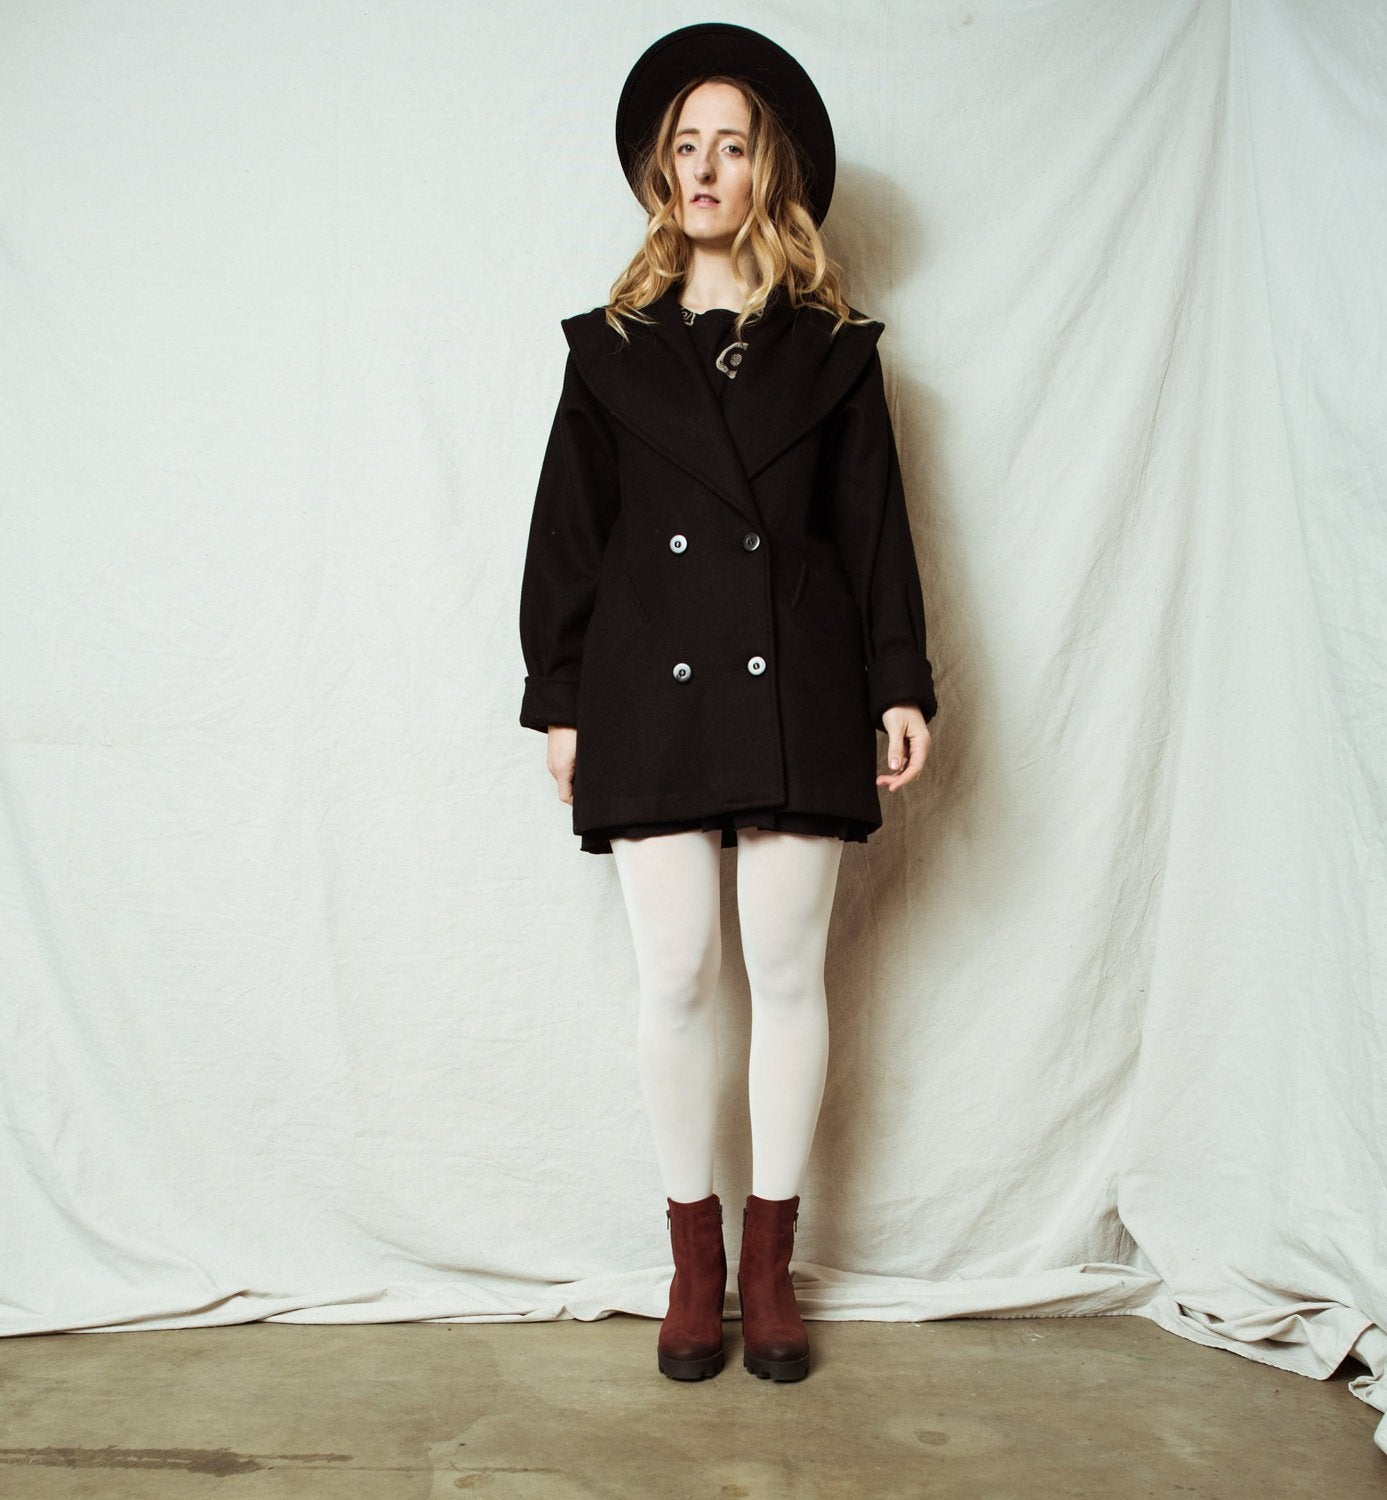 Vintage Black Wool Coat / XS/S - Closed Caption